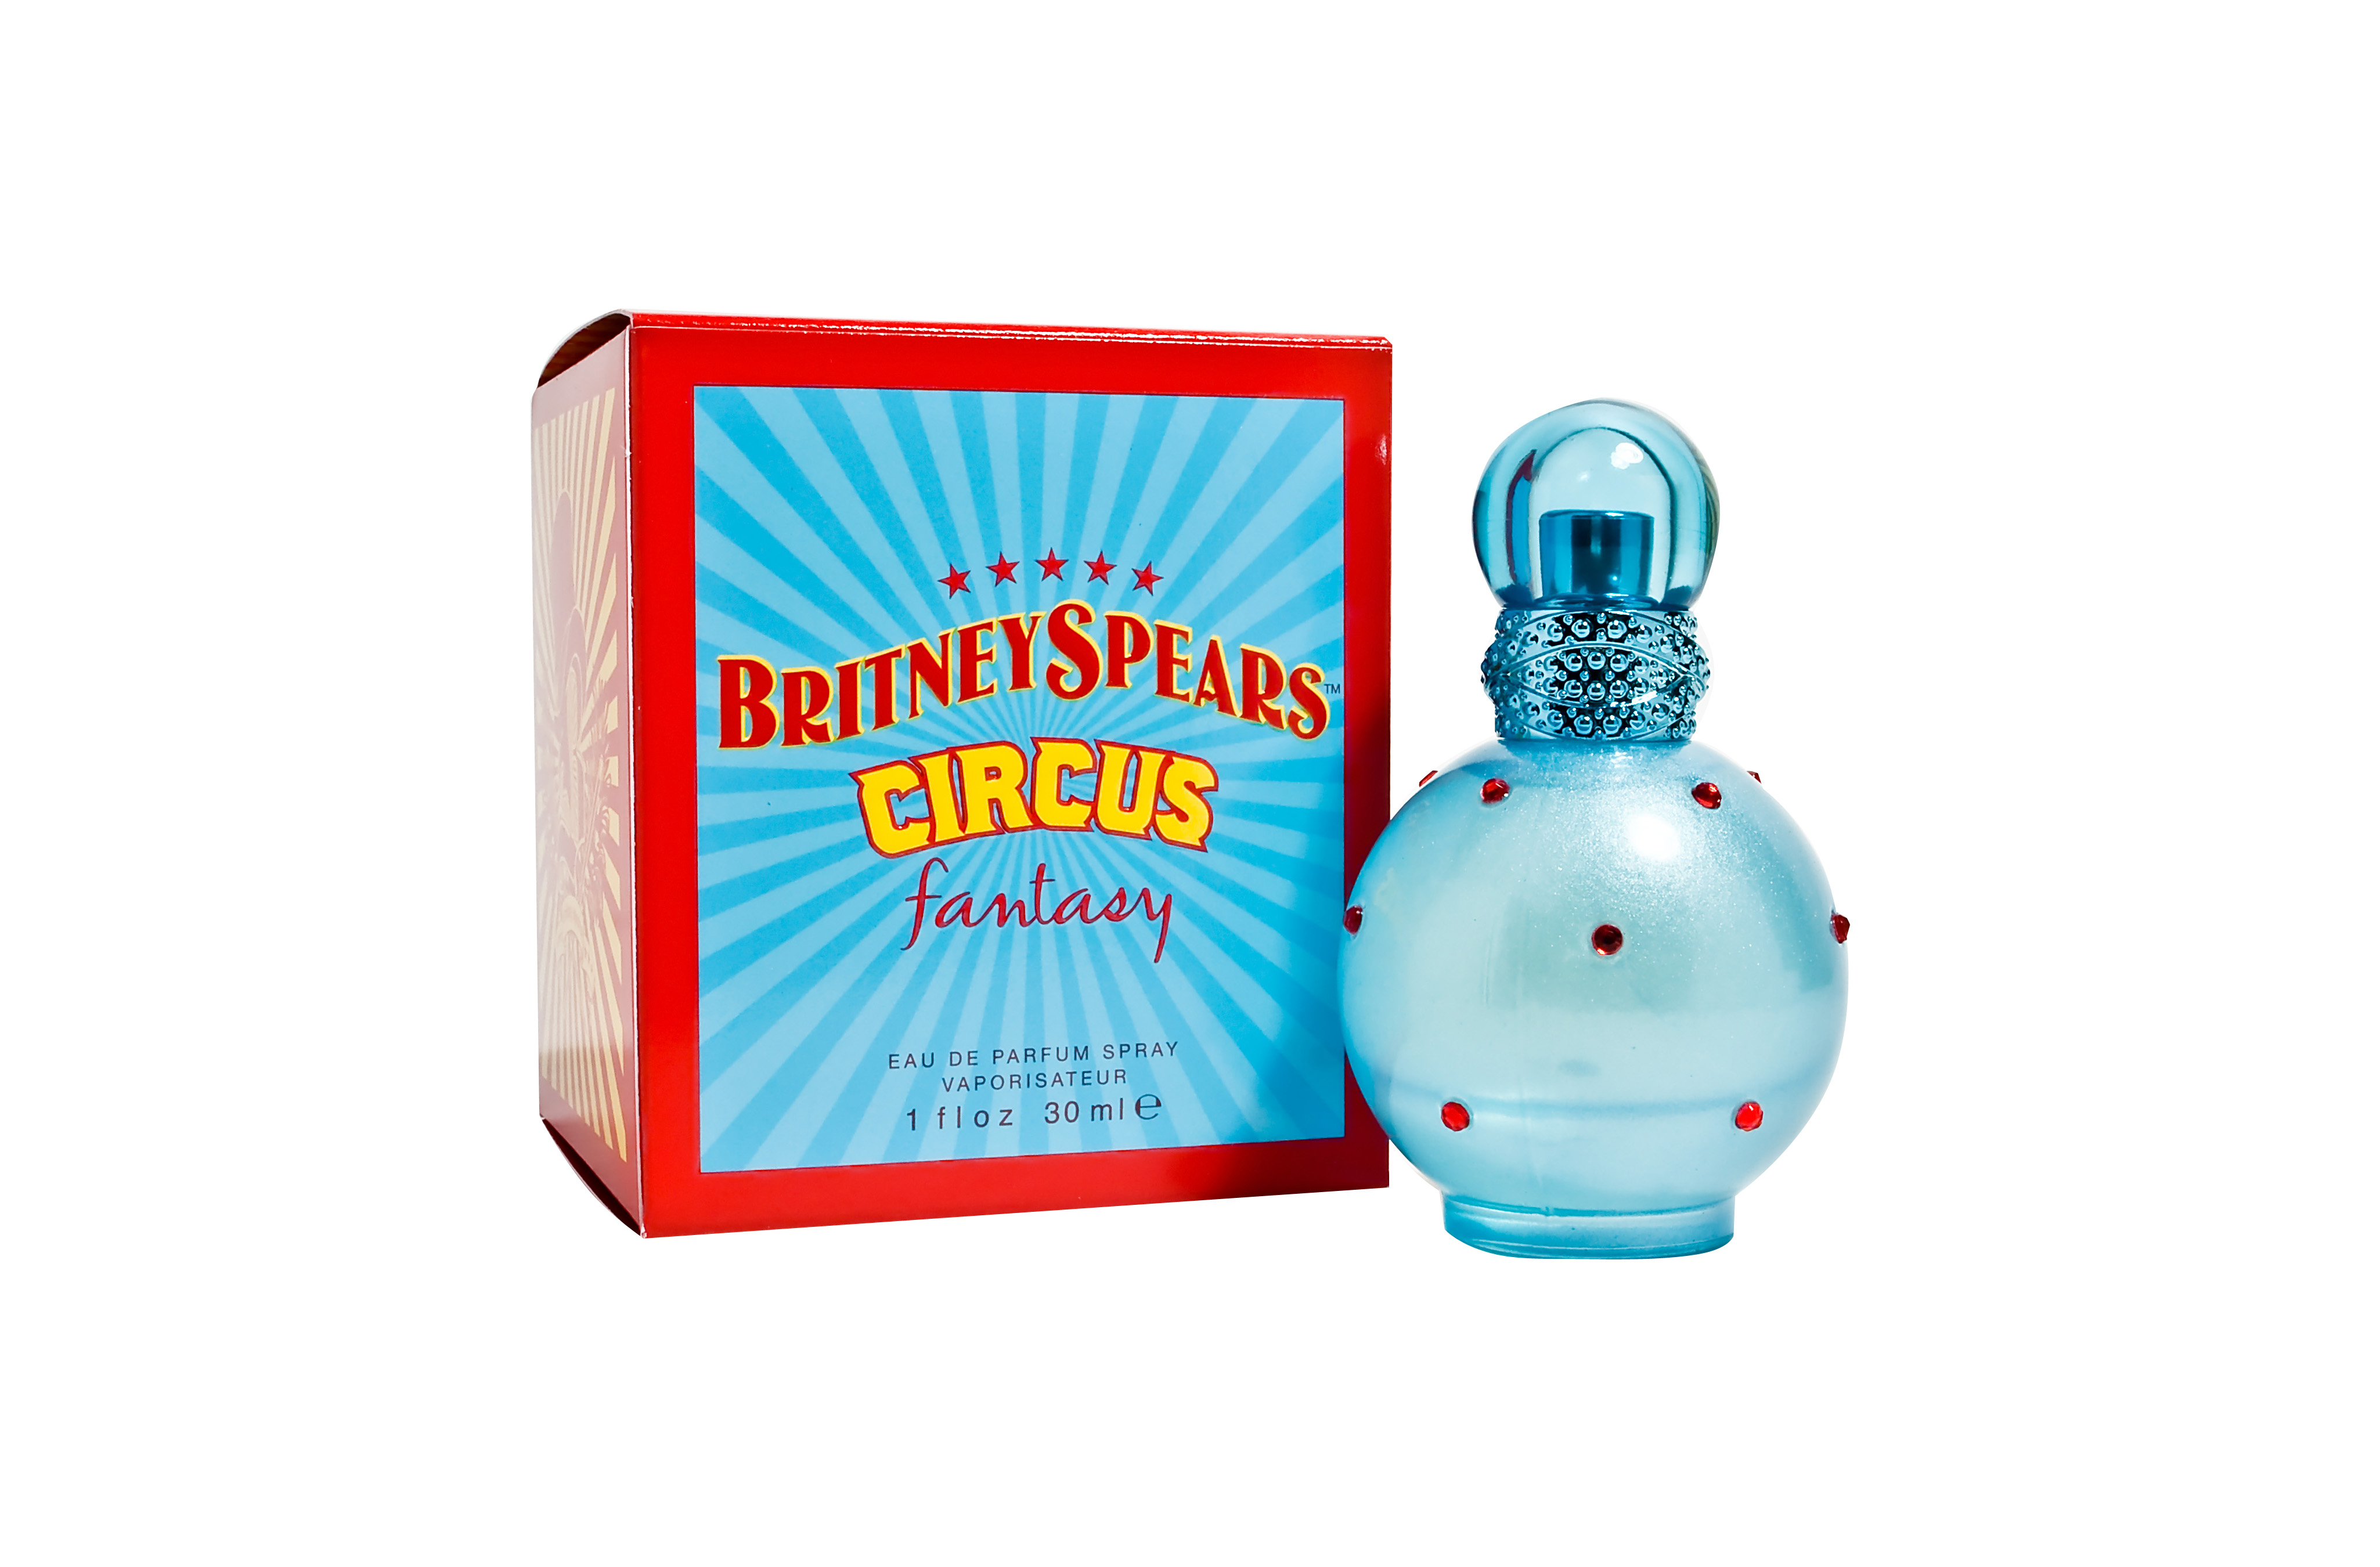 Britney Spears Circus Fantasy Eau De Parfum 30ml for Her Enlarged Preview